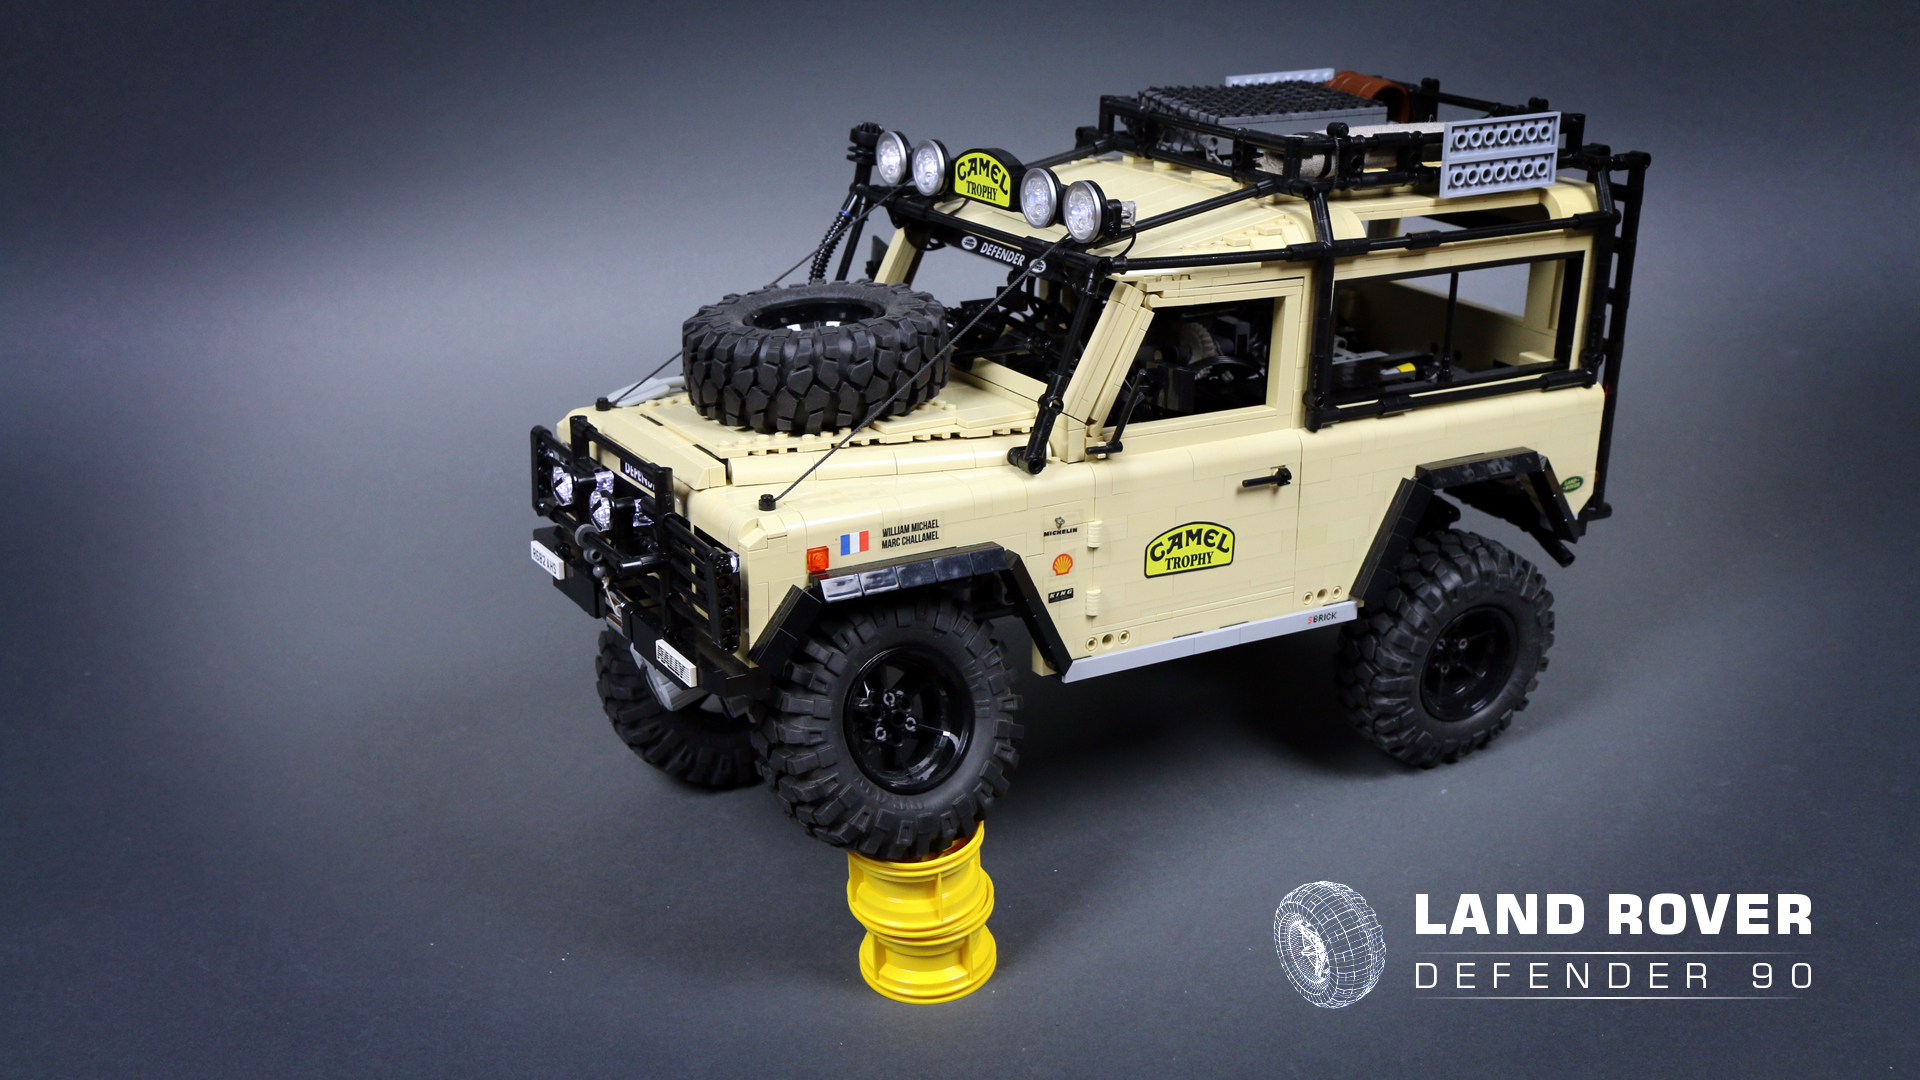 Sariel Land Rover Defender 90